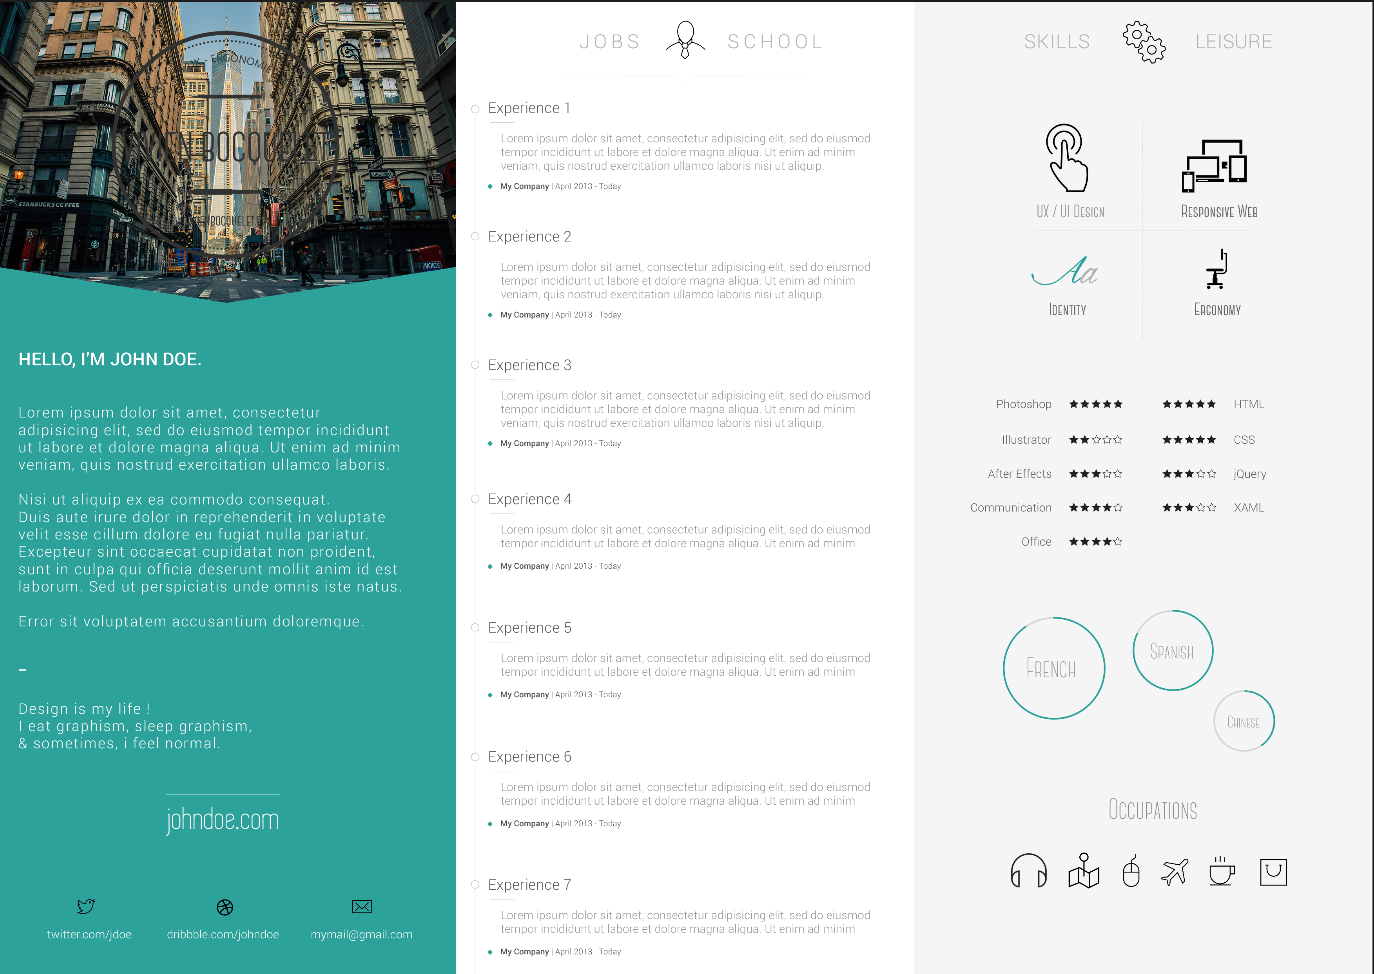 CV_Template_Design_JohnDoe_3